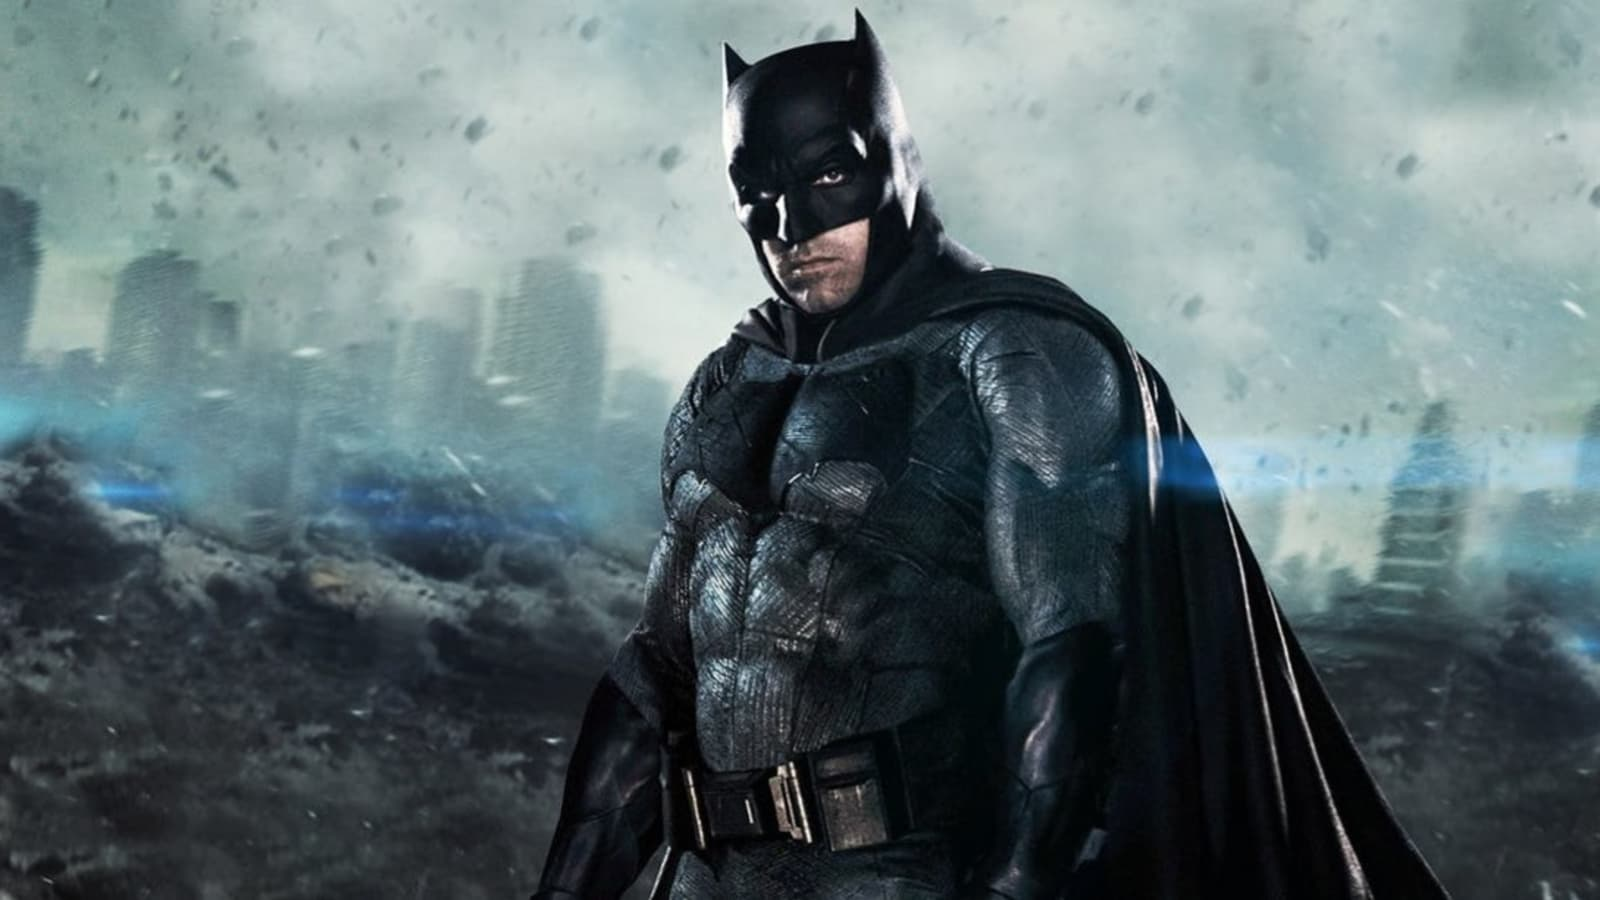 Batman turns 80 today and is still fighting crime and making money